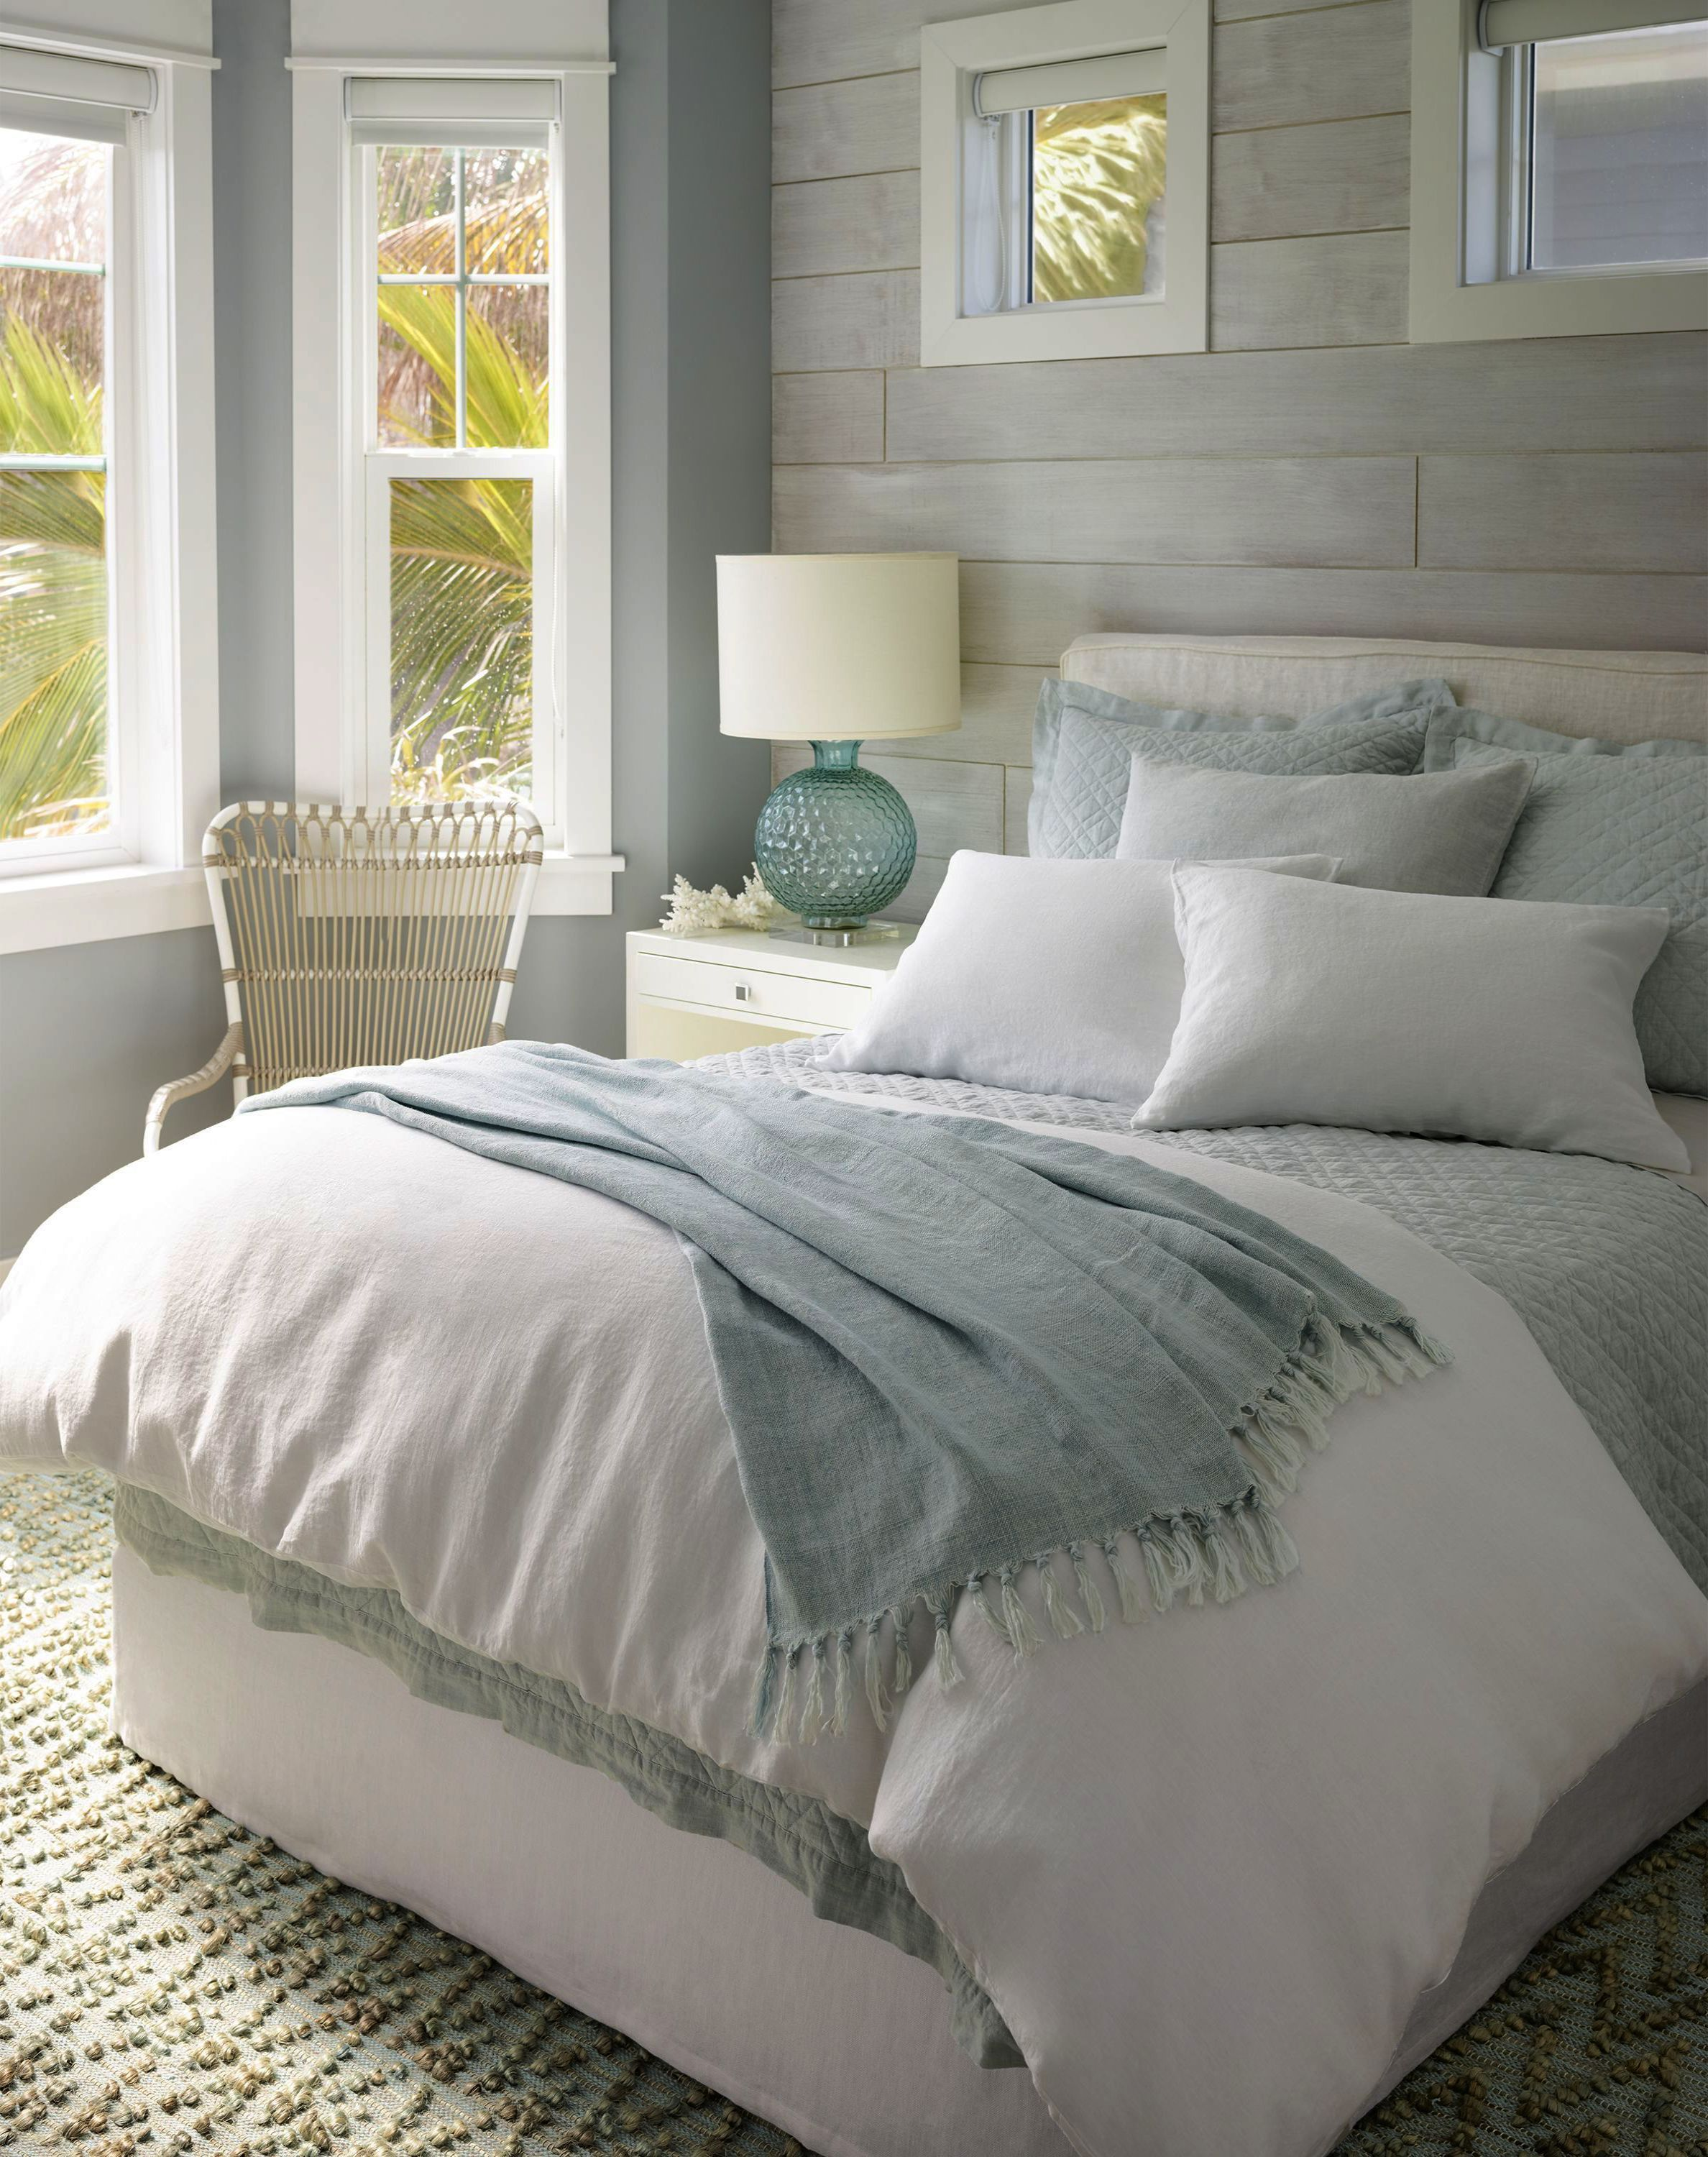 Beach House Ideas Nz Through Home Decor Joanna Gaines Like Home Decorators Collection Blinds Ph Coastal Bedroom Decorating Neutral Bedroom Decor Bedroom Colors